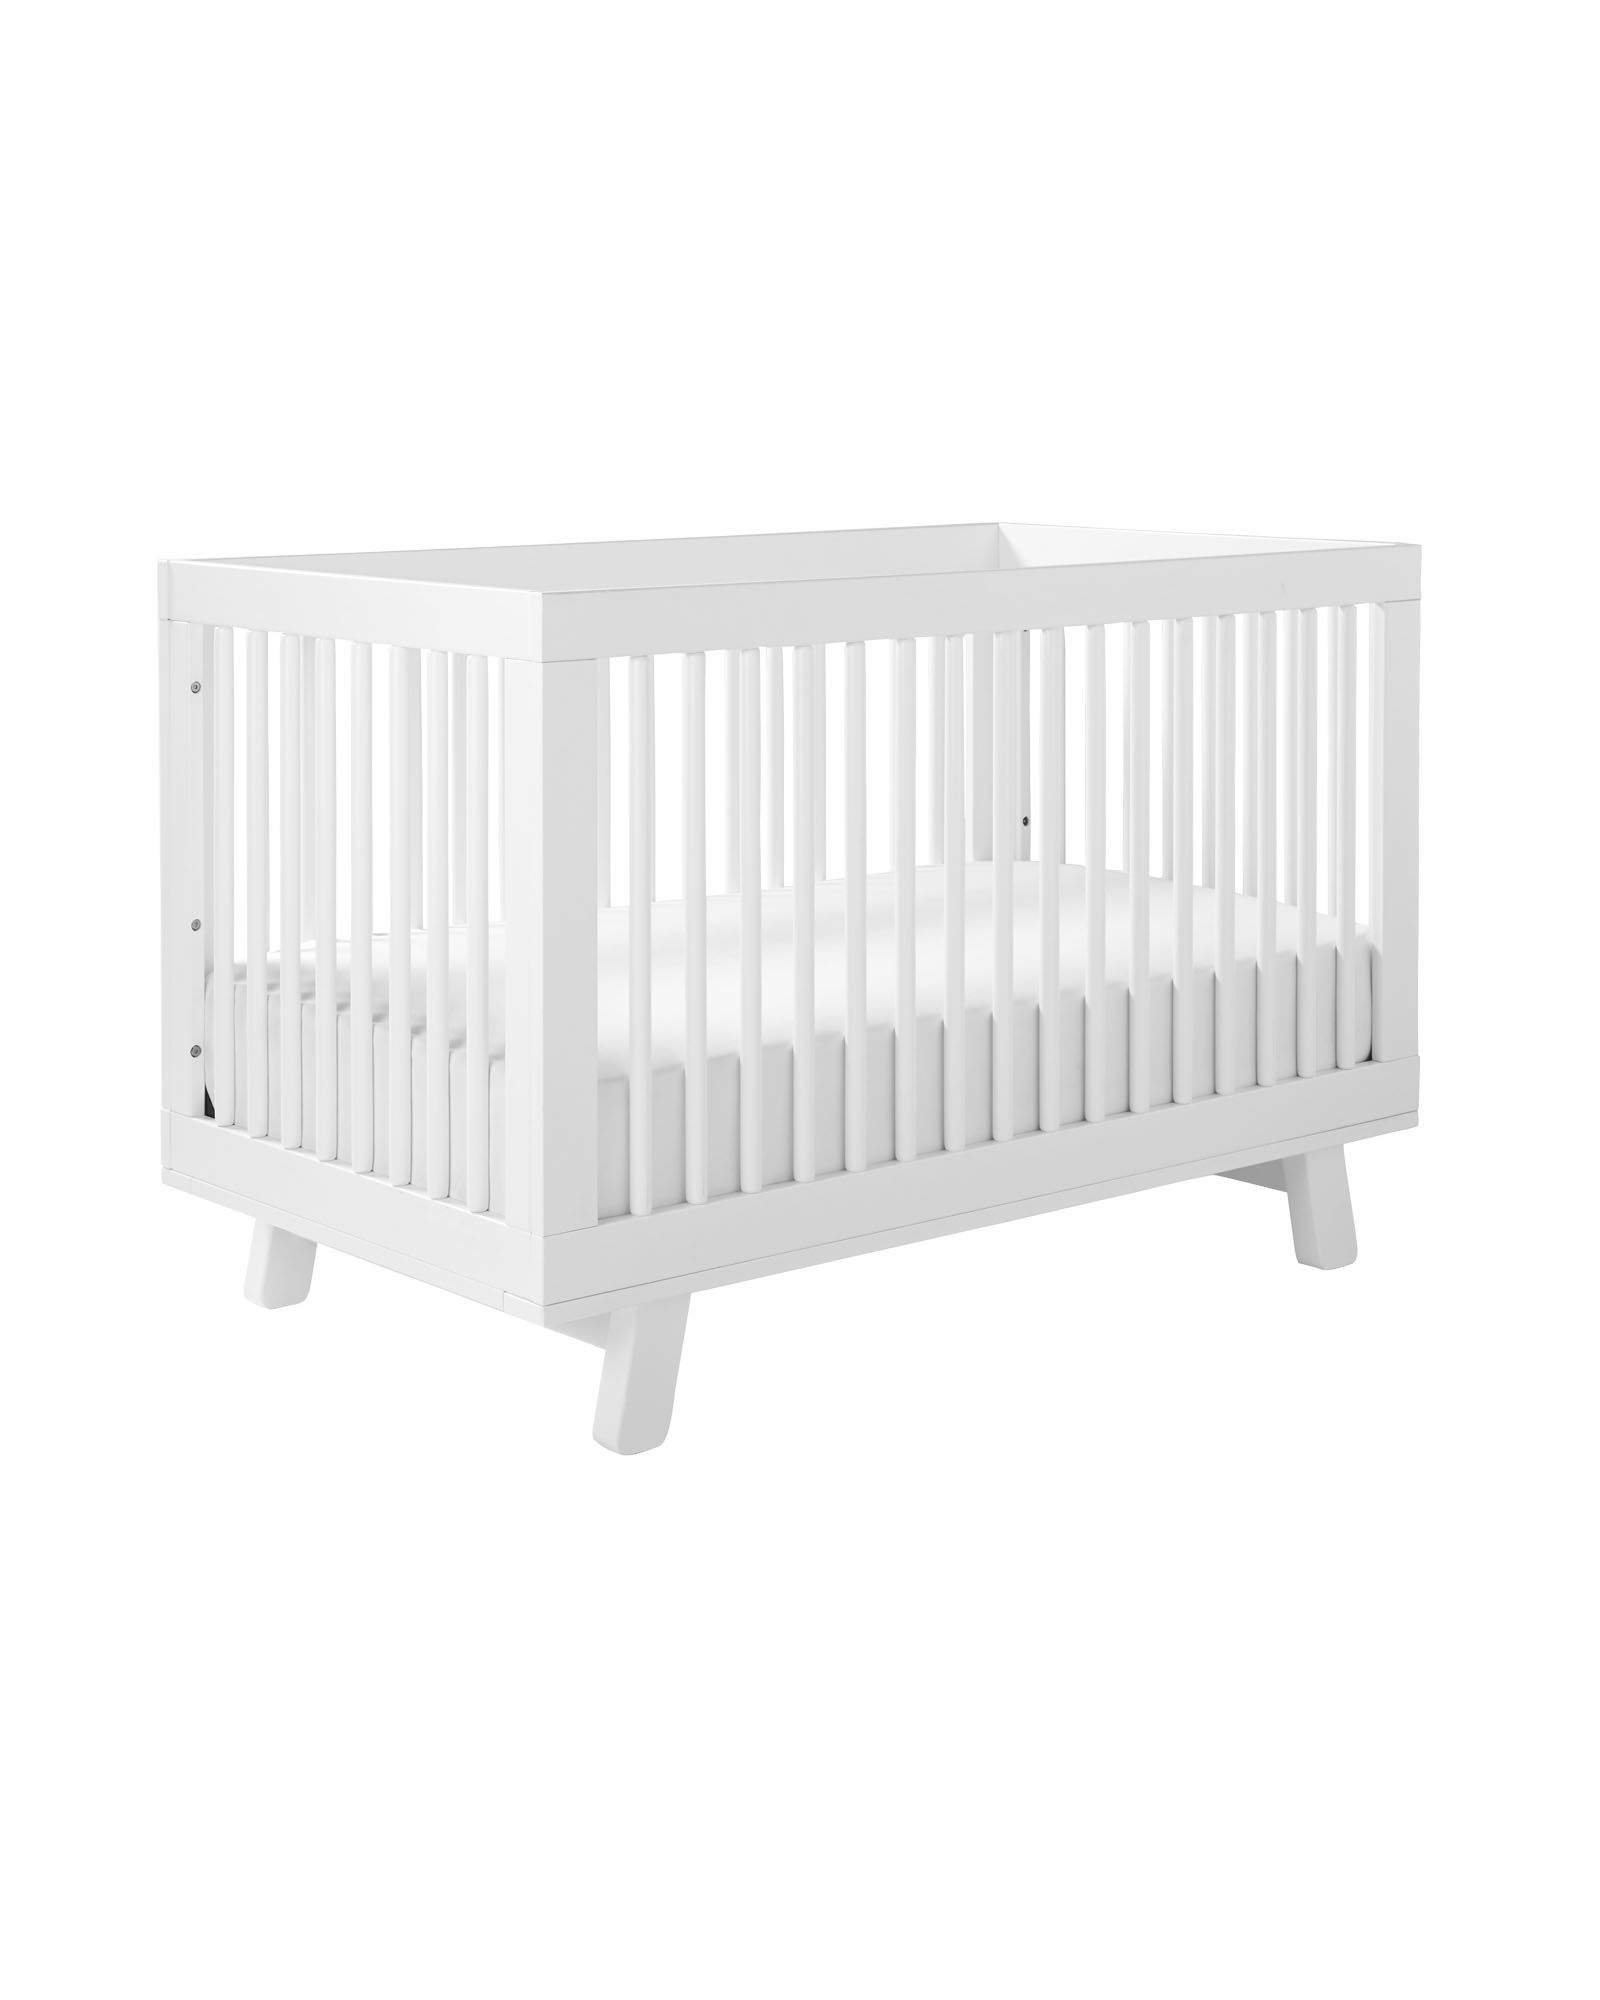 Crib alternatives for babies - Super Simple And Sophisticated This Is A Nice Alternative To Traditional Crib Design The